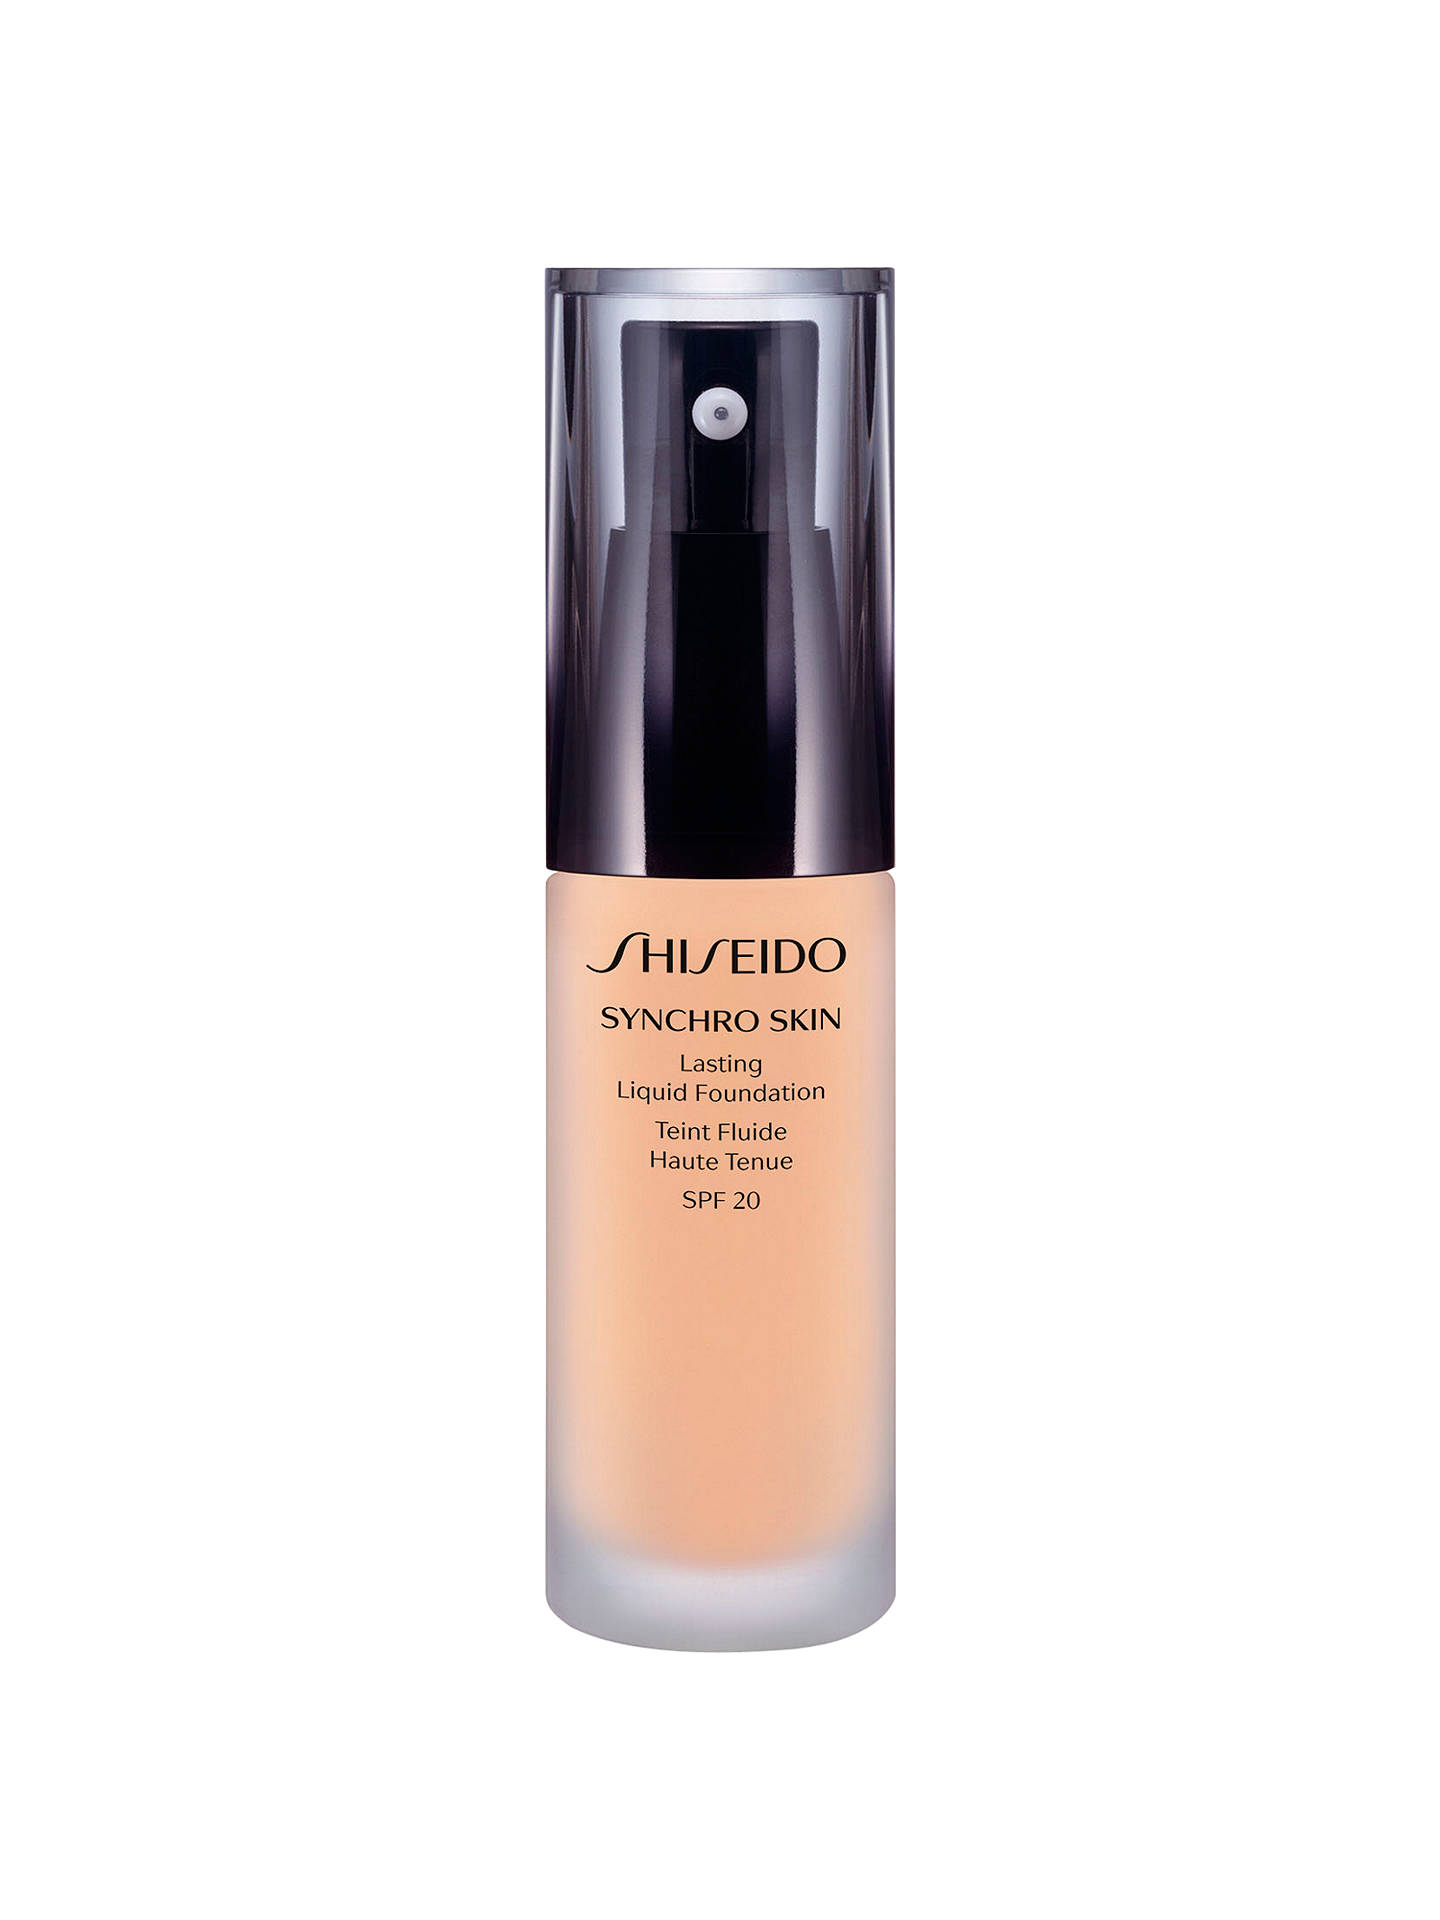 Buy Shiseido Synchro Skin Lasting Liquid Foundation SPF20, Neutral 1 Online at johnlewis.com